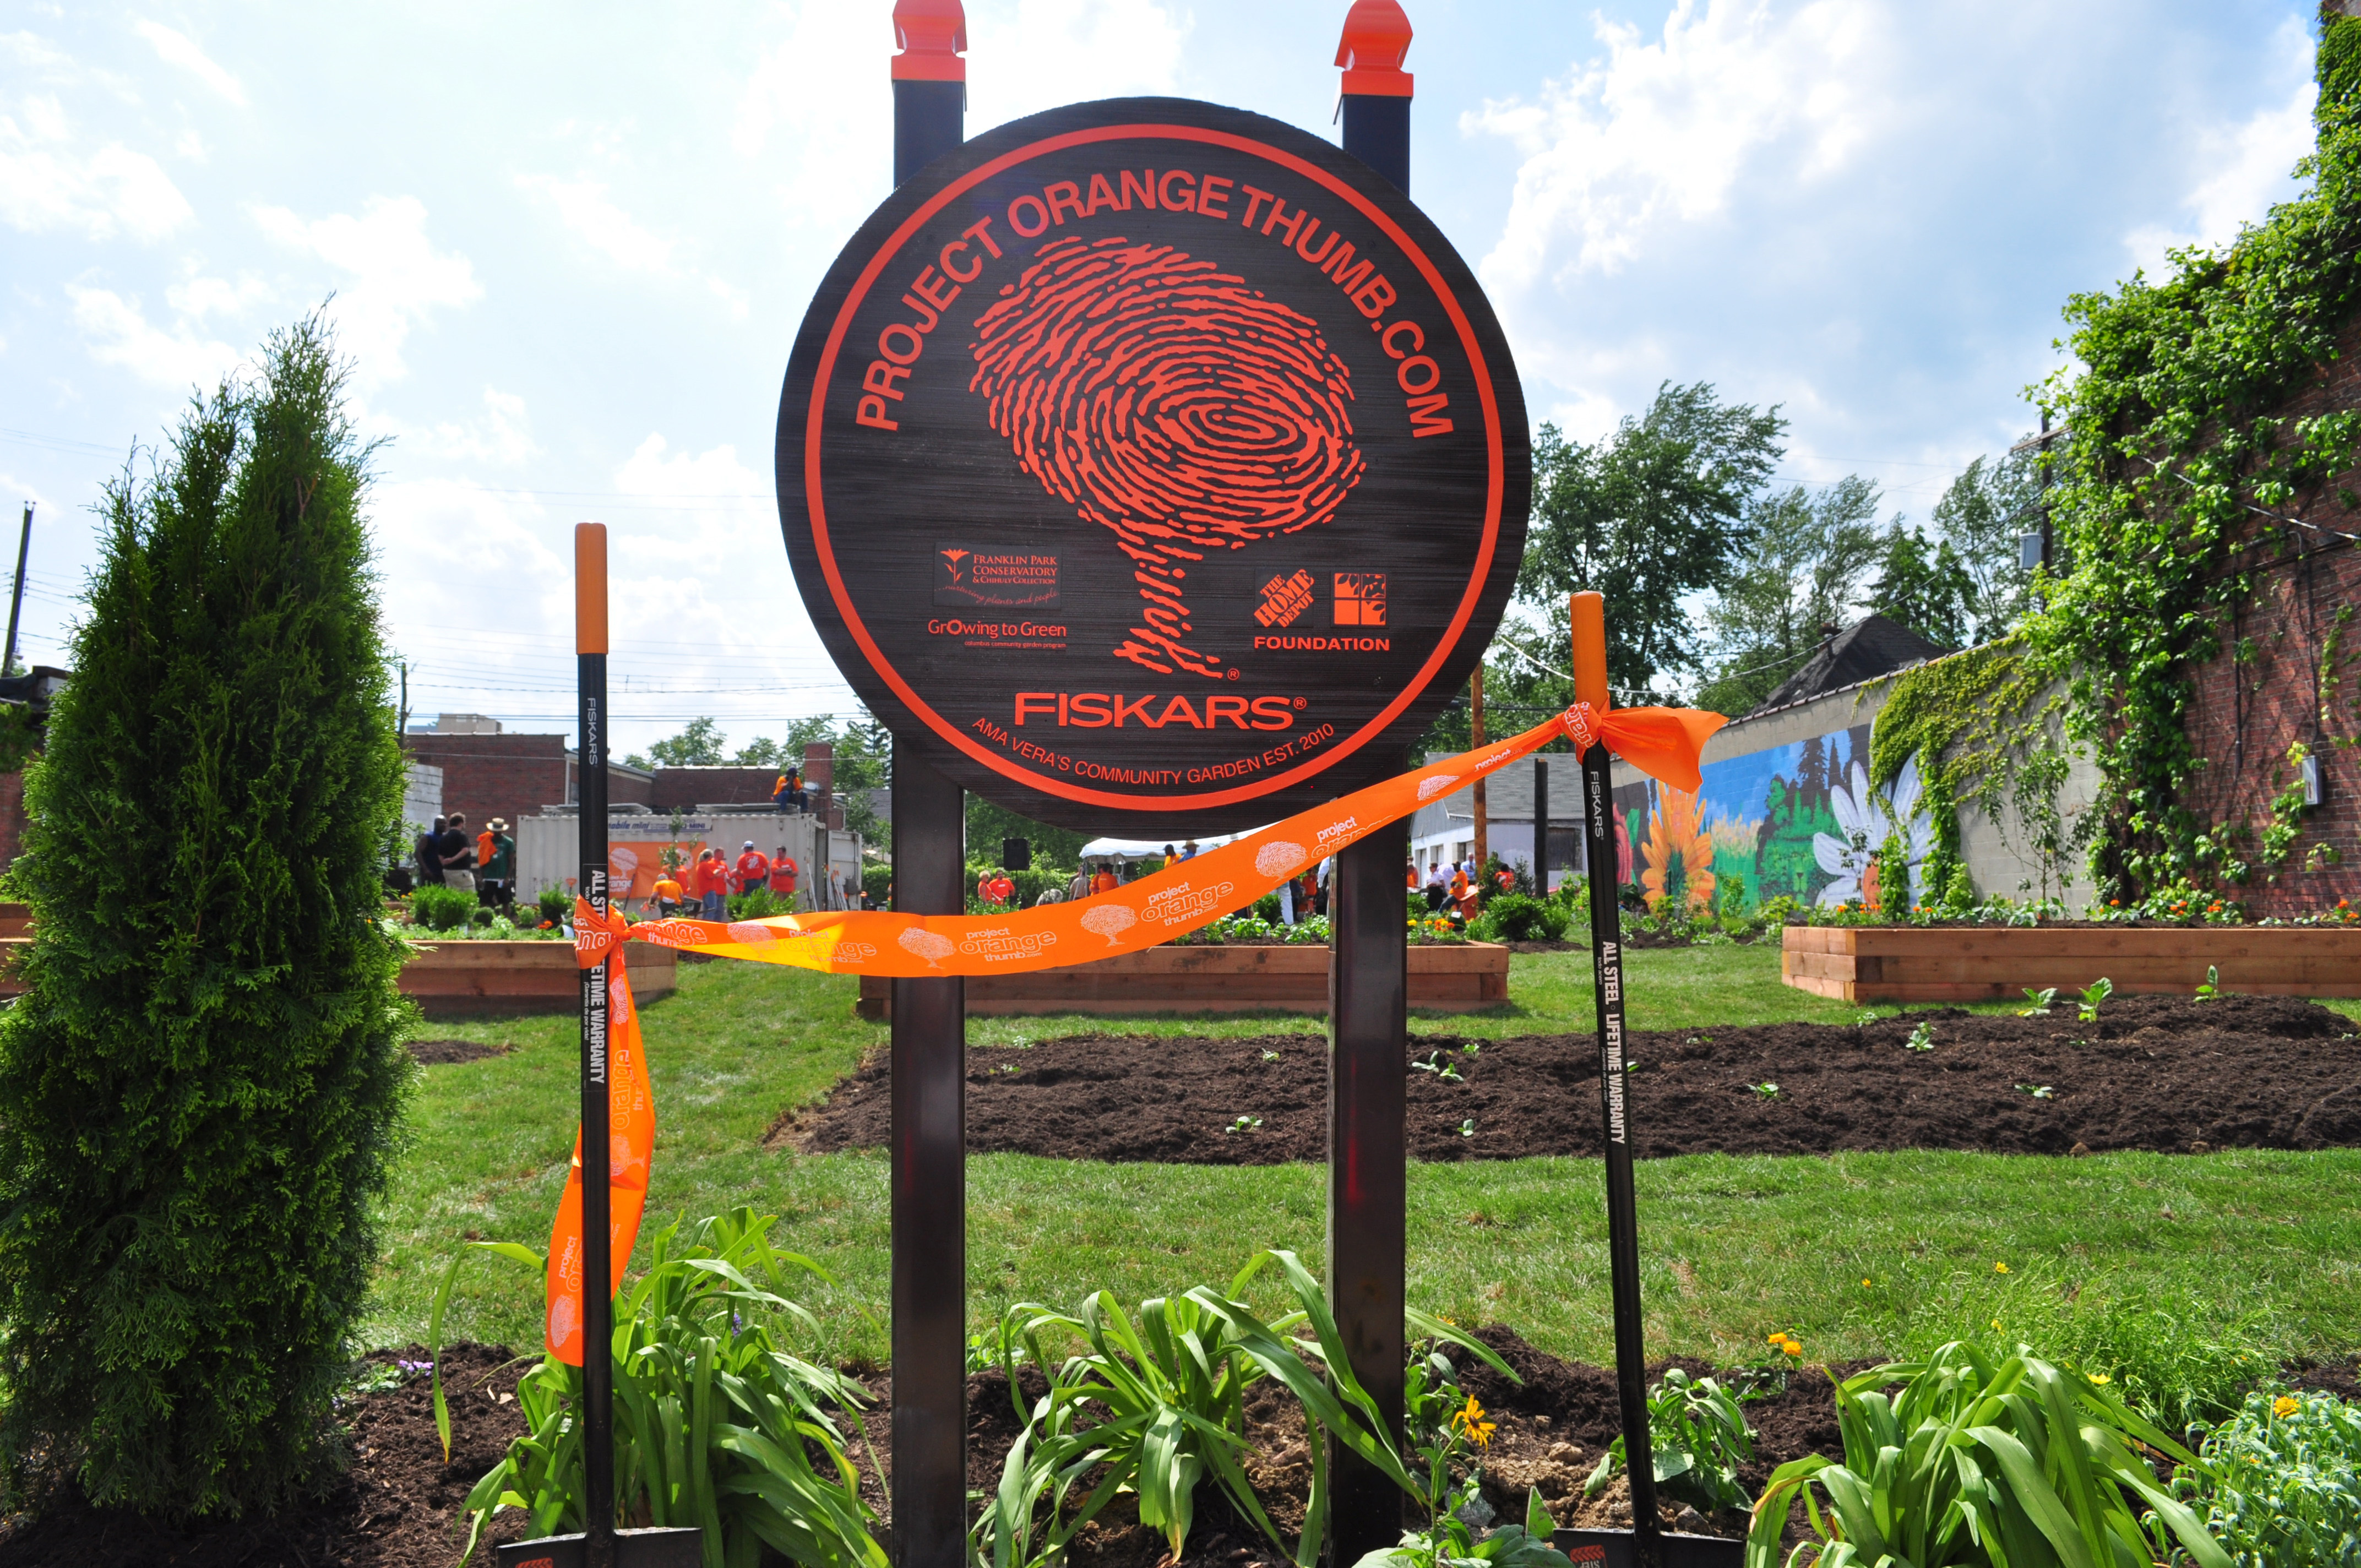 Project Orange Thumb Garden (Photo: Business Wire)